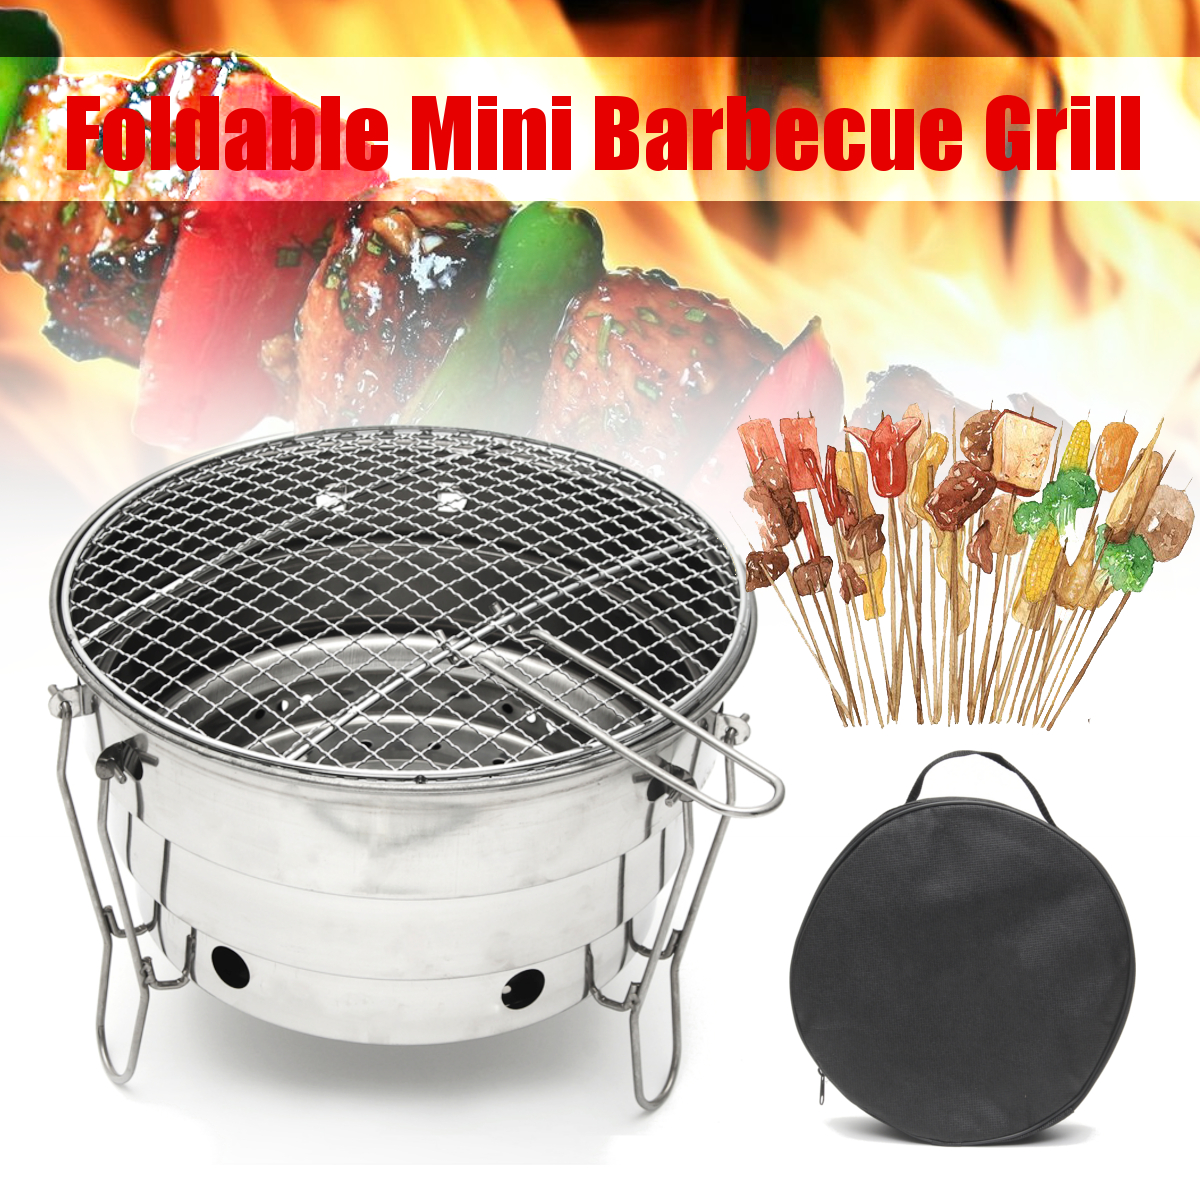 Stainless Steel Barbecue Charcoal BBQ Grill Foldable Portable Cooking Outdoor Camping Burner for Home Patio Stove Family Party